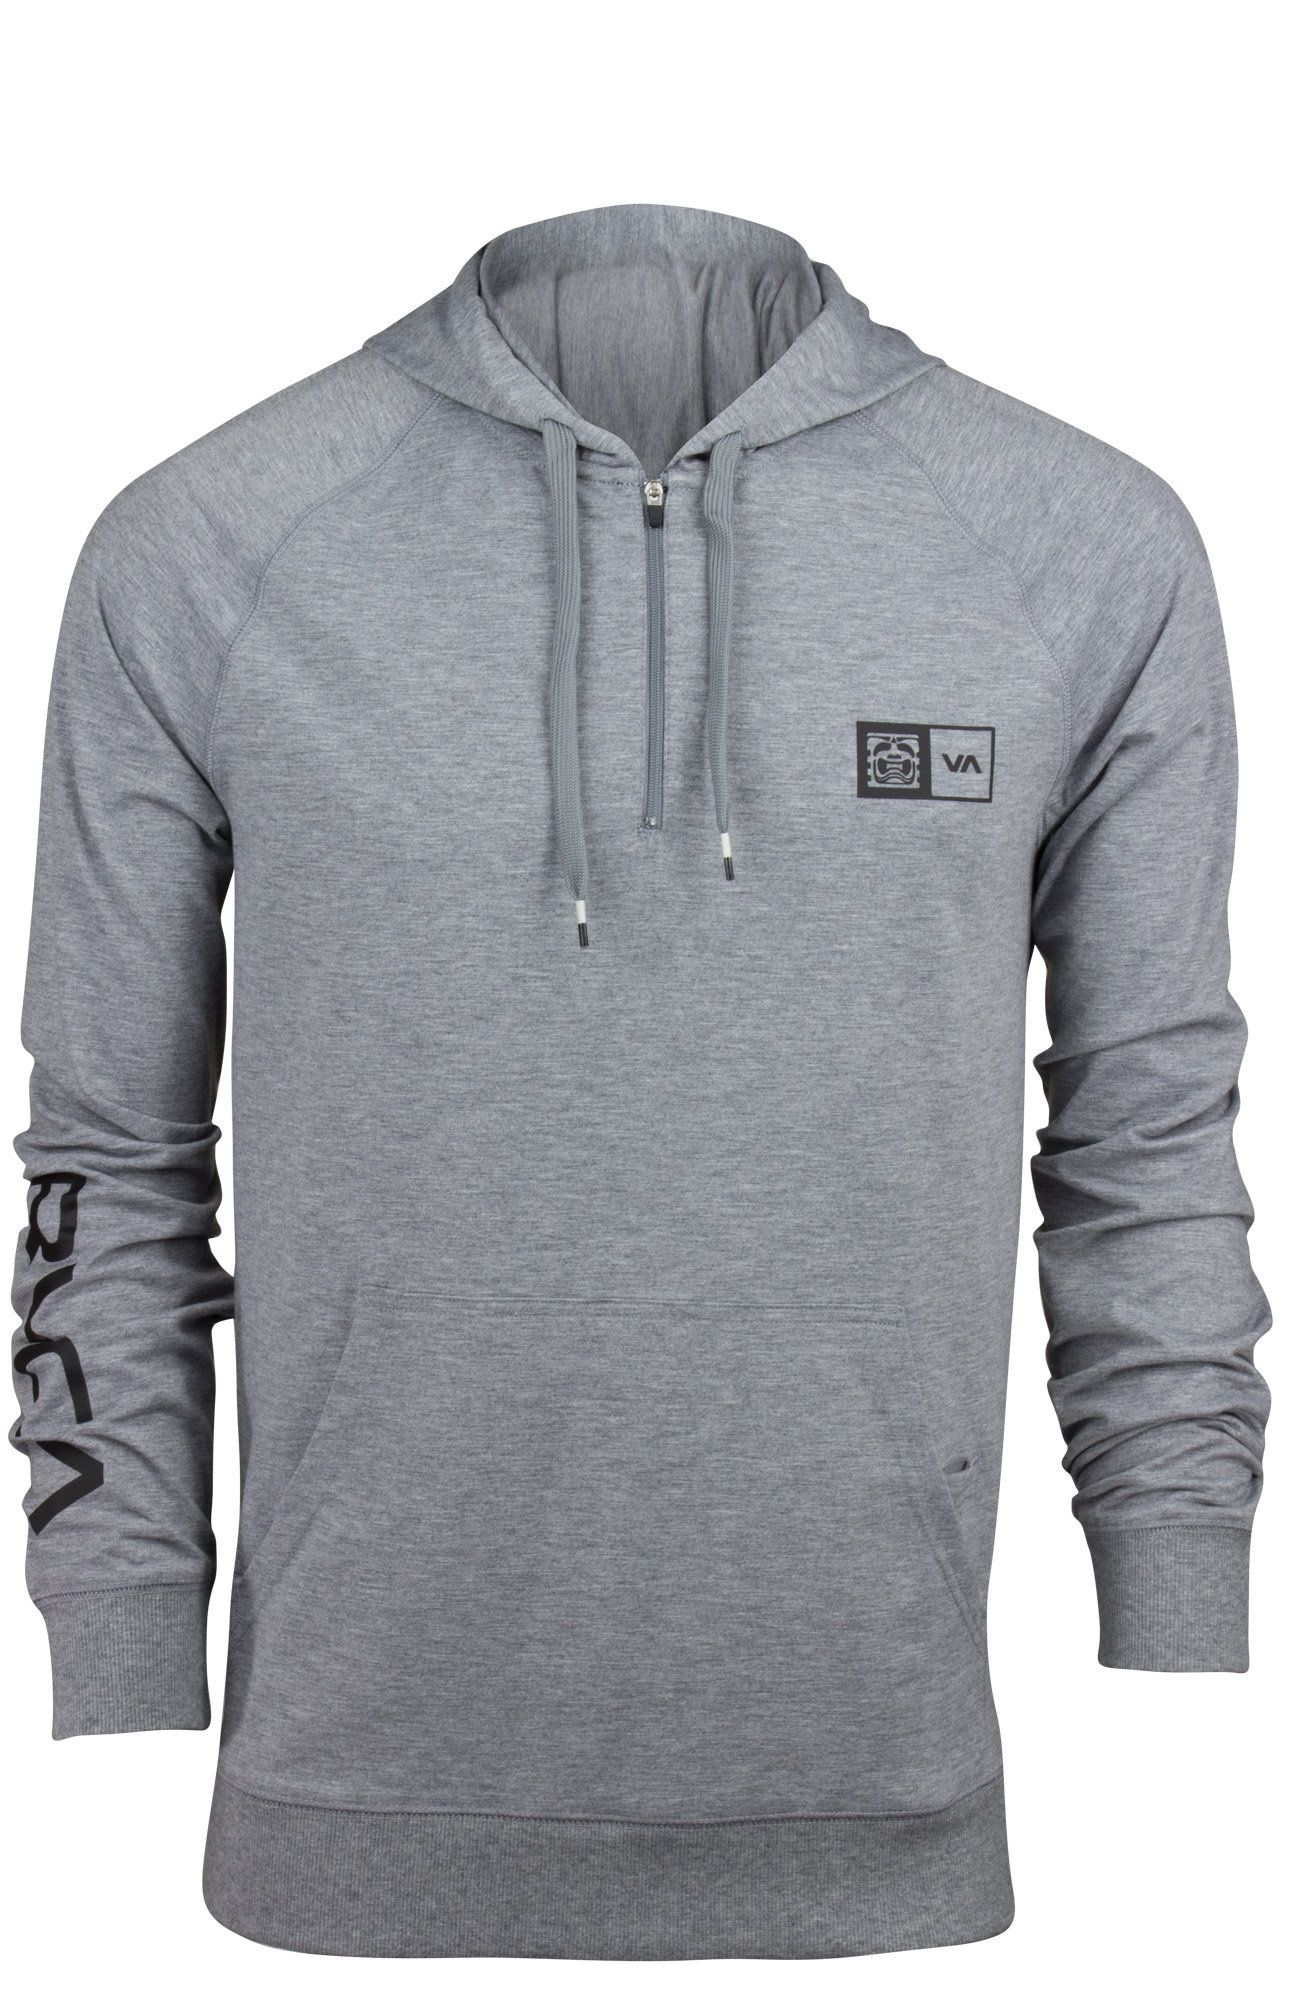 b44f0862ba66 RVCA VA Sport BJ Penn Hoodie (Athletic Heather Gray)